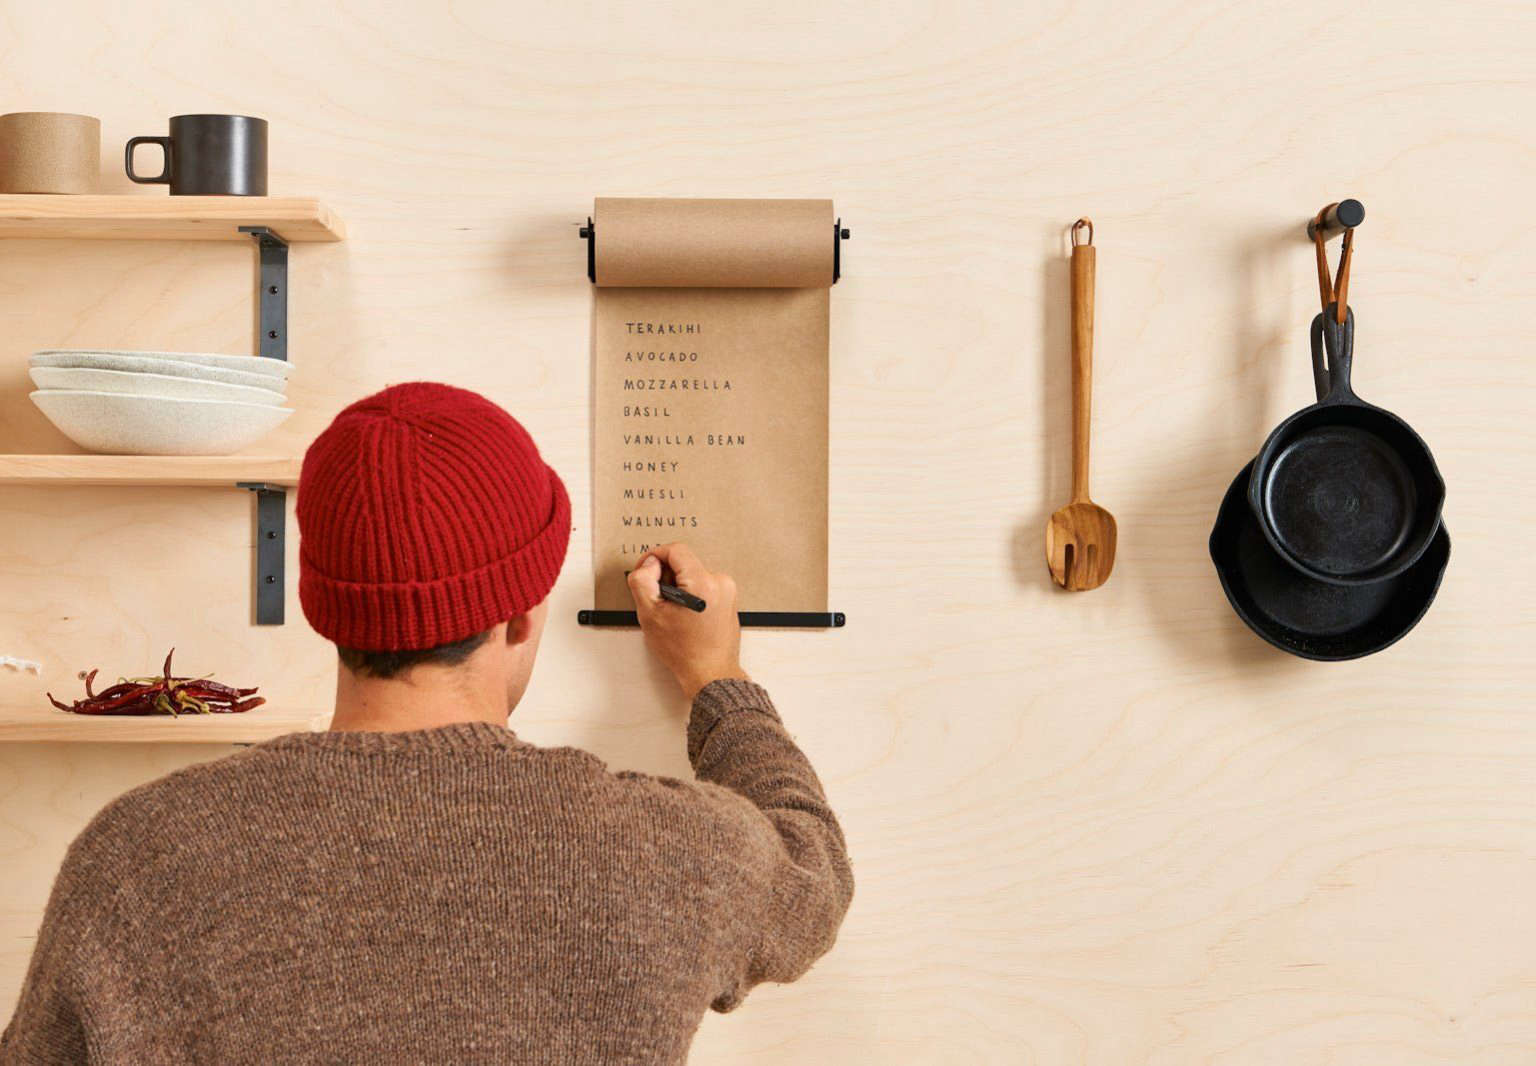 Solutions for Living: Simple Everyday Designs by George and Willy